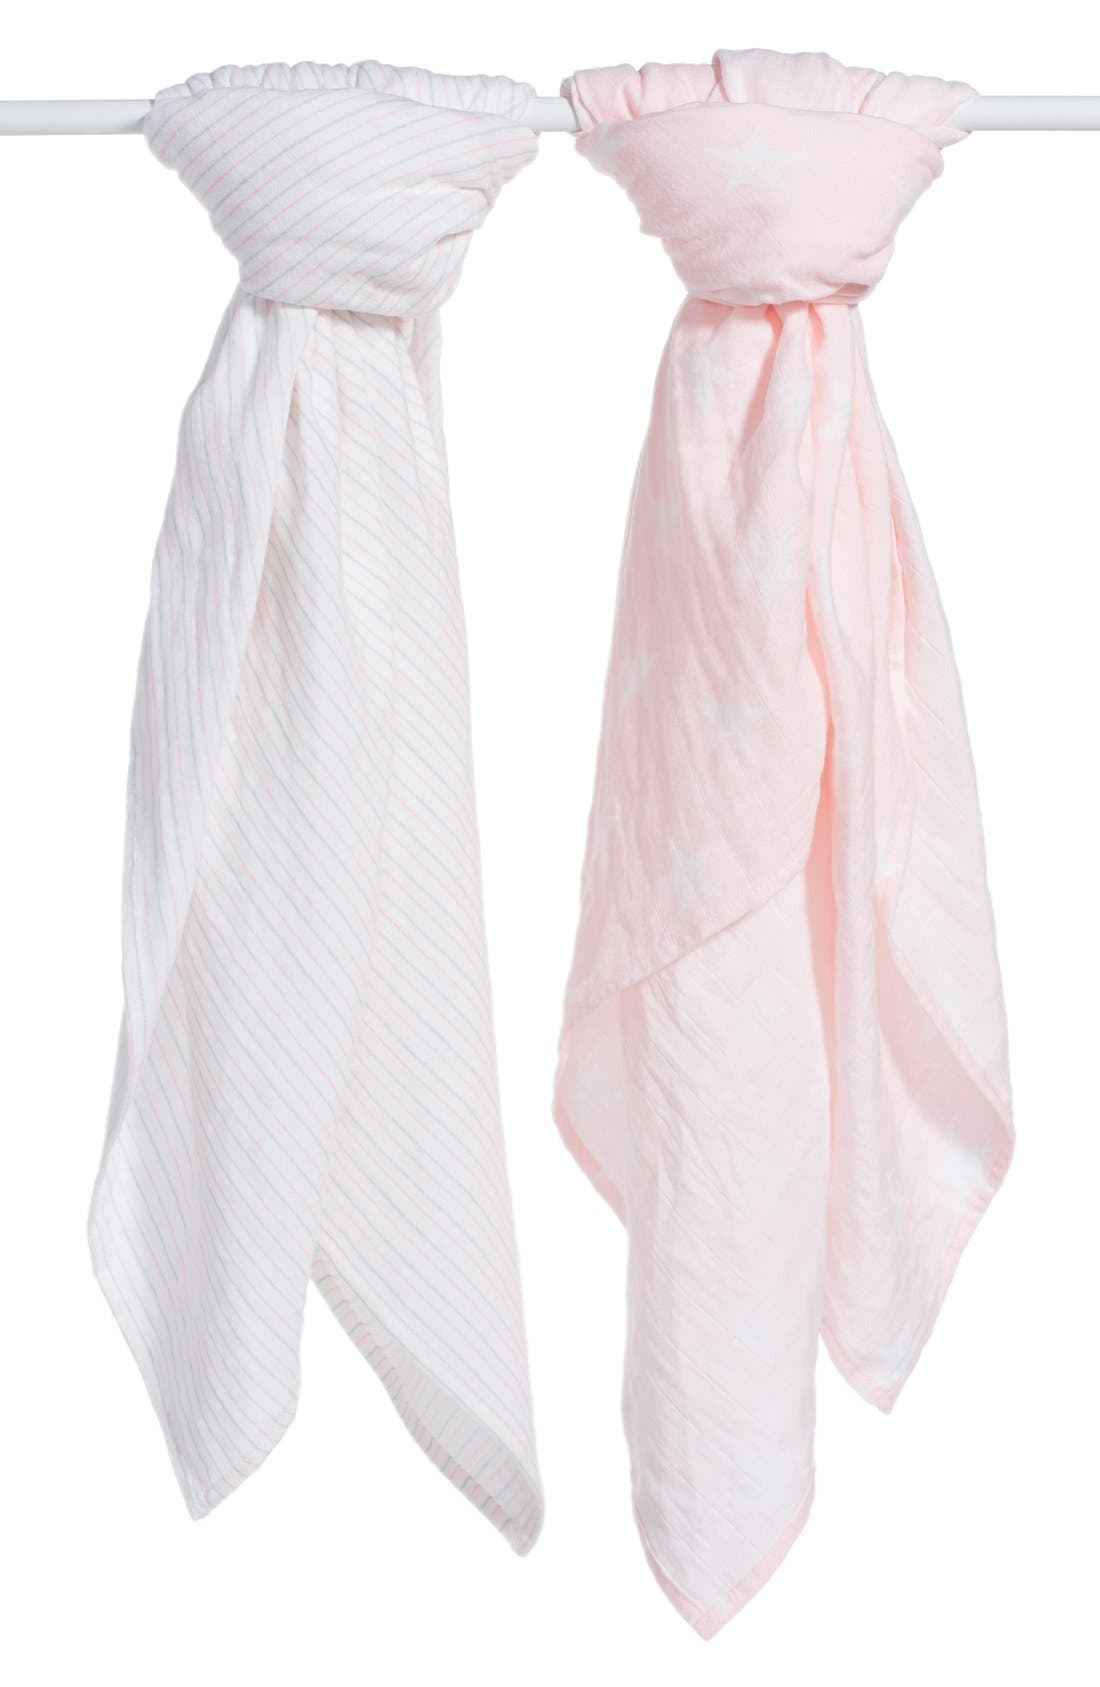 ADEN + ANAIS 2-Pack Flannel & Muslin Swaddling